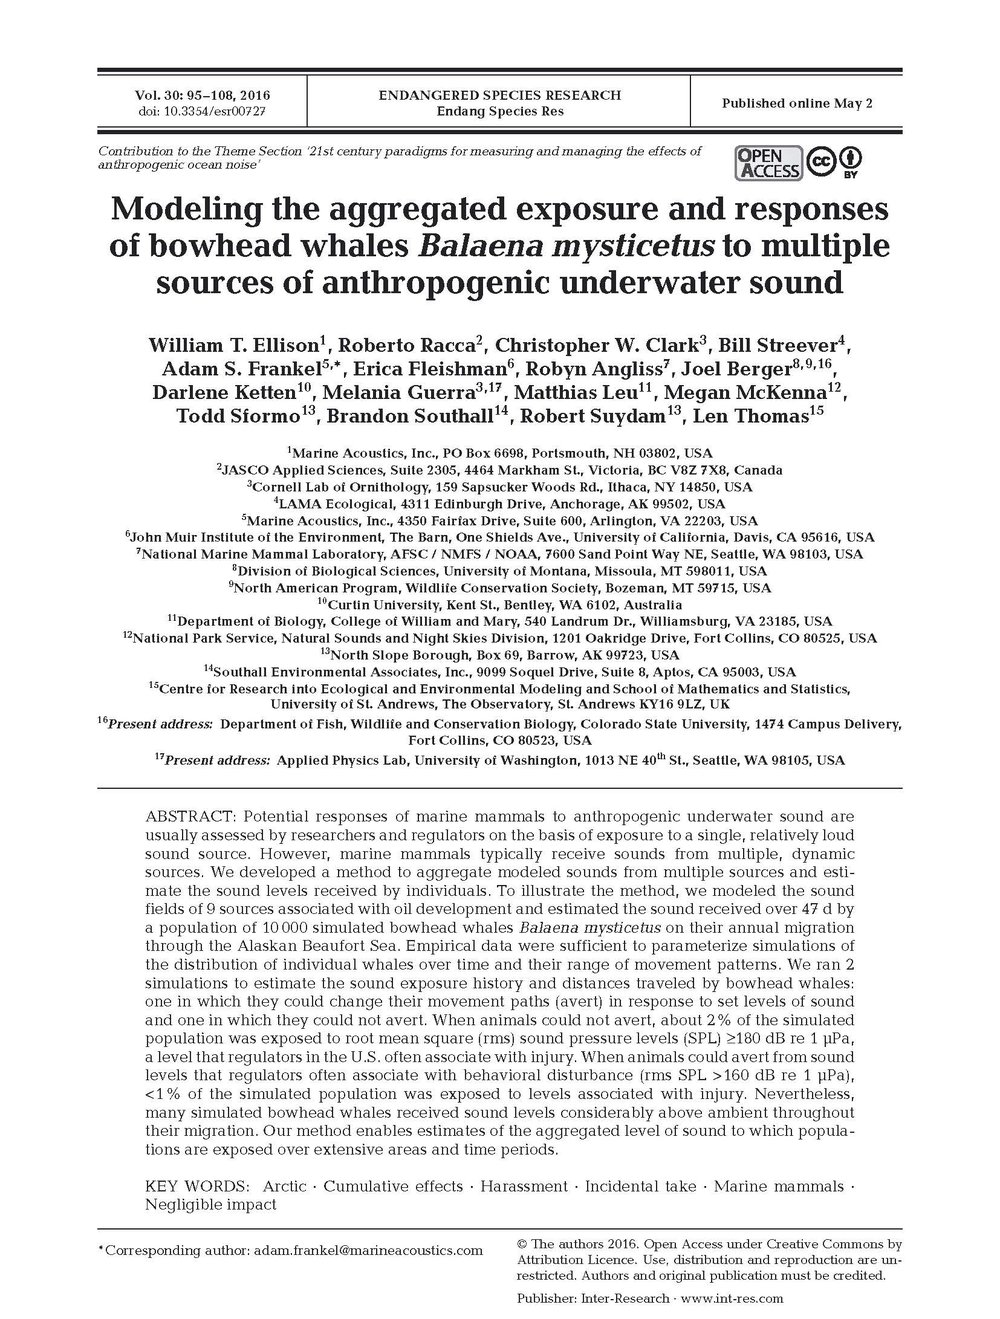 Modeling the aggregated exposure and responses of bowhead whales Balaena mysticetus to multiple sources of anthropogenic underwater sound - Ellison, W.T., R. Racca, C.W. Clark, B. Streever, A.S. Frankel, E. Fleishman, R. Angliss, J. Berger, D. Ketten, et al. Endang. Species Res. 30: 95-108 (2016)doi.org/10.3354/esr00727